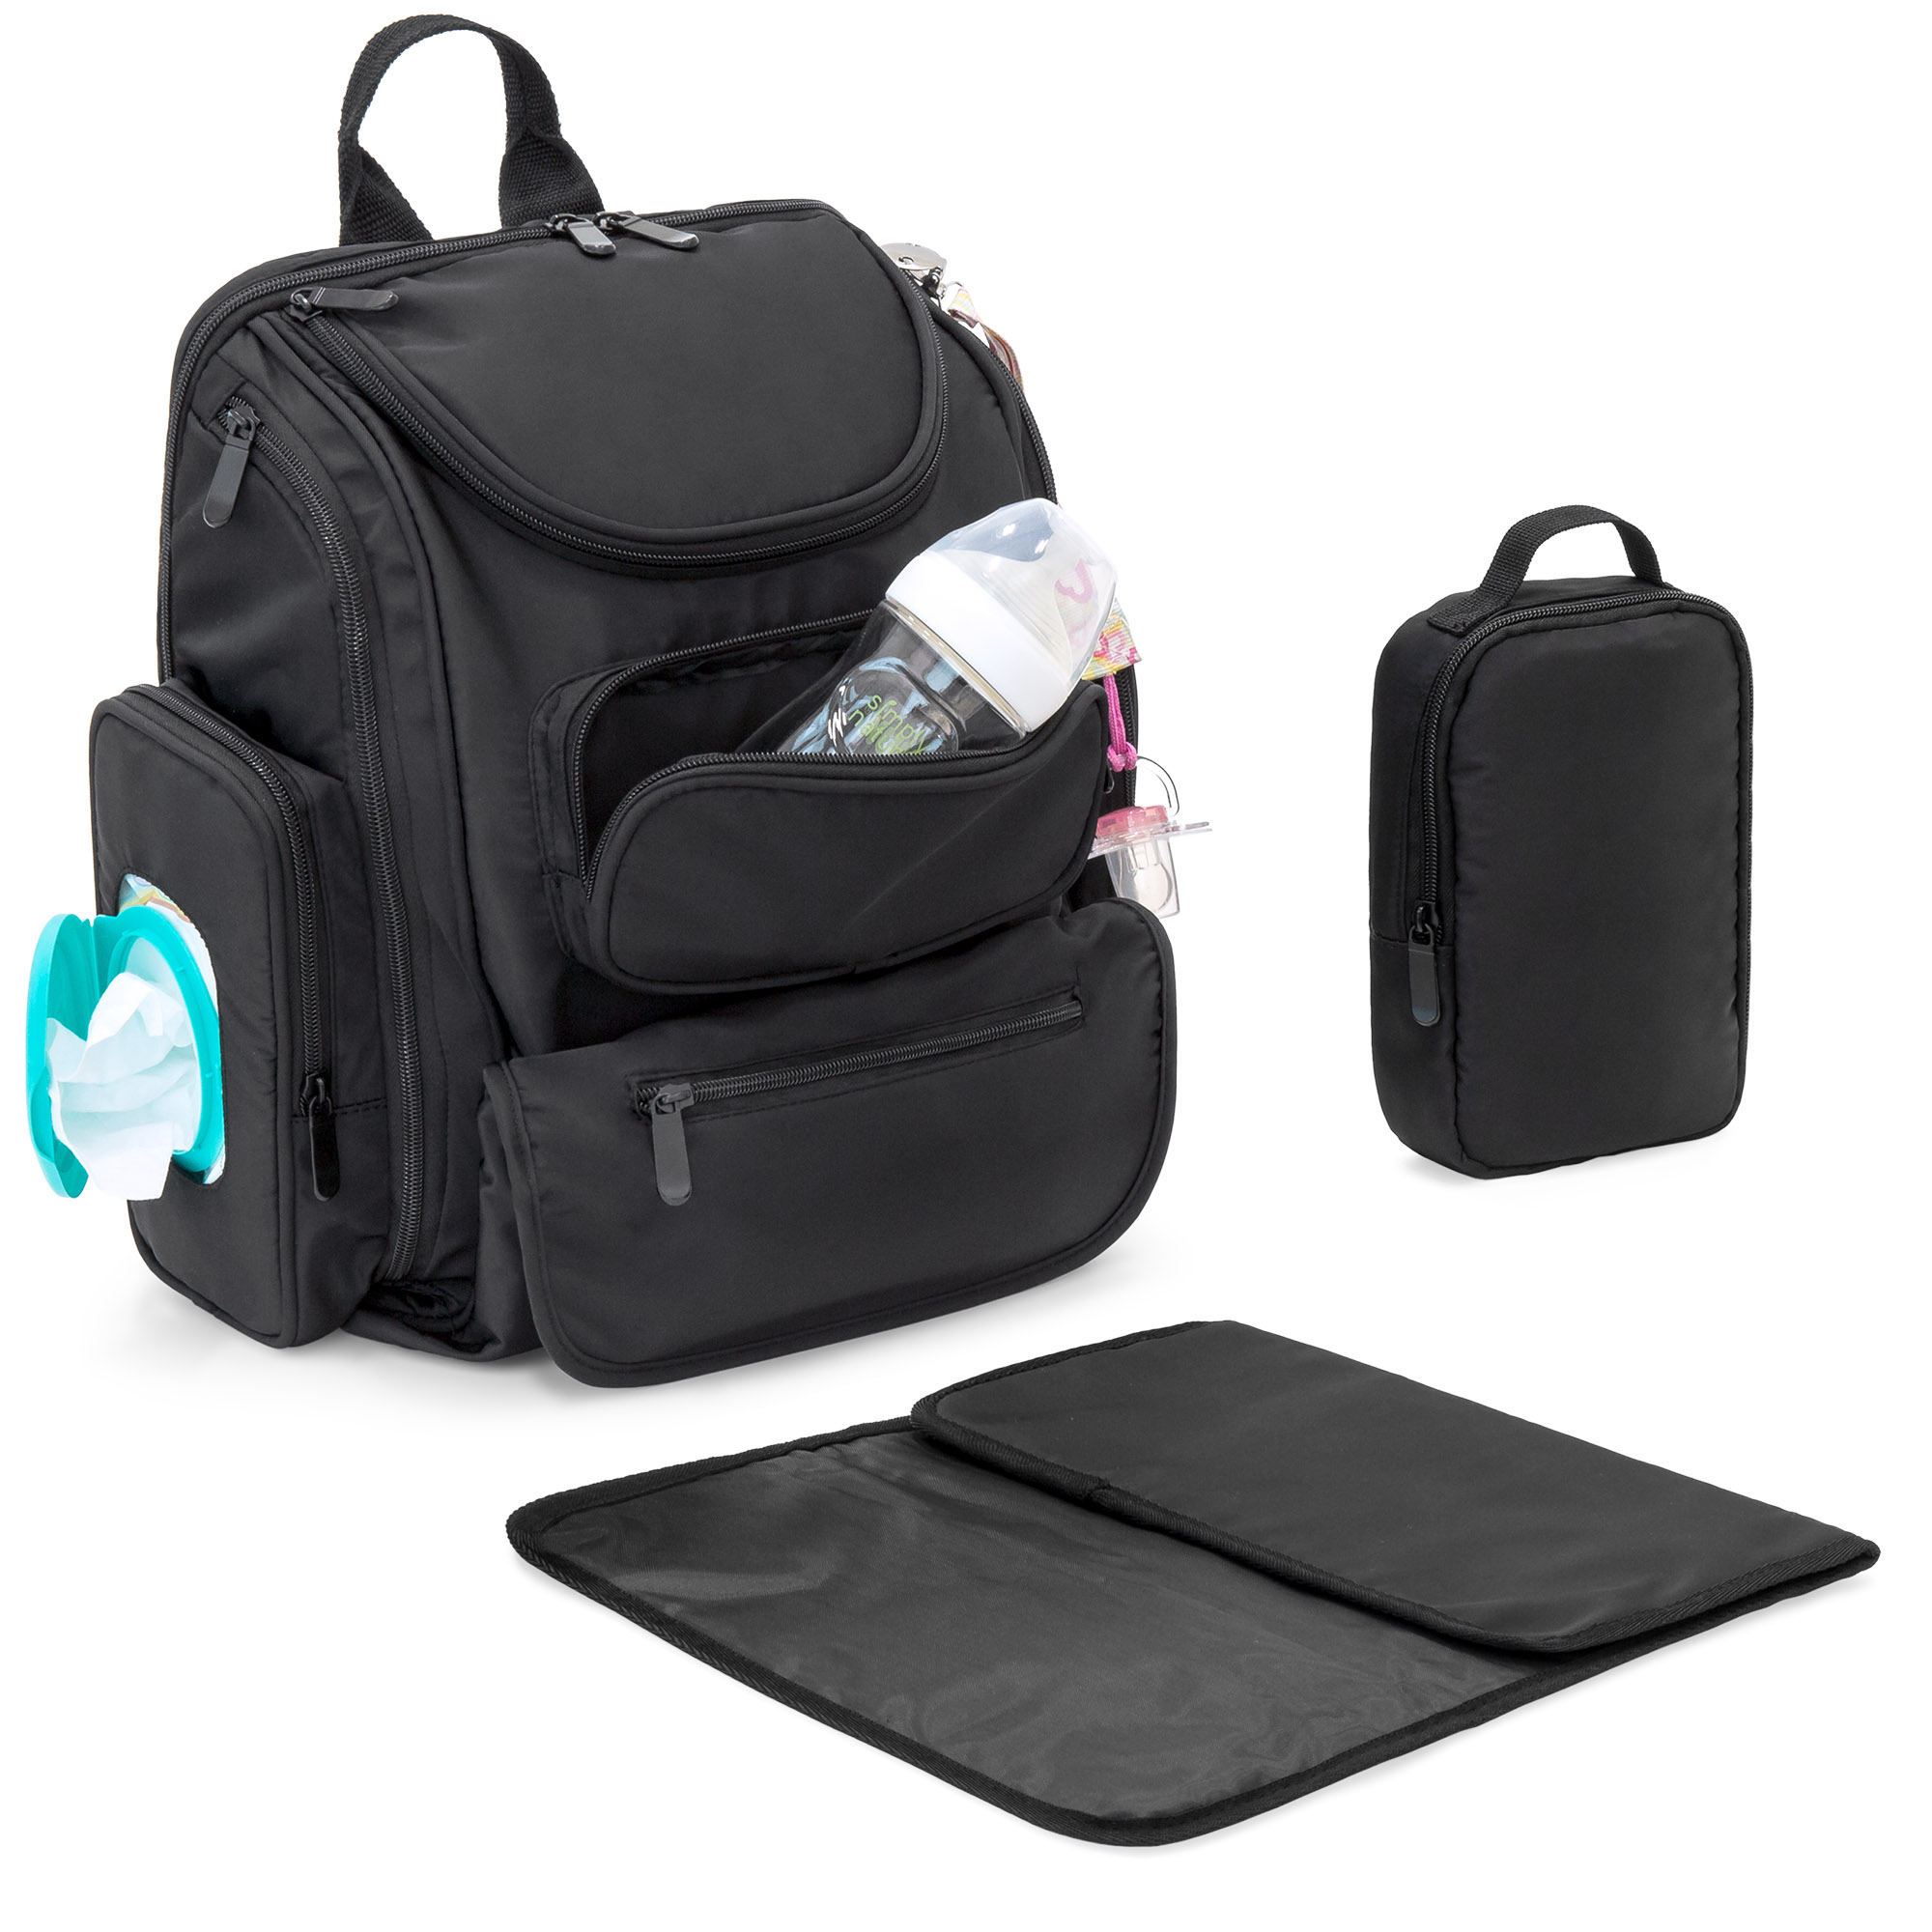 Best Choice Products Baby Diaper Bag Backpack w/ 14 Pockets, Stroller Straps, Changing Pad, Sundry Bag - Black